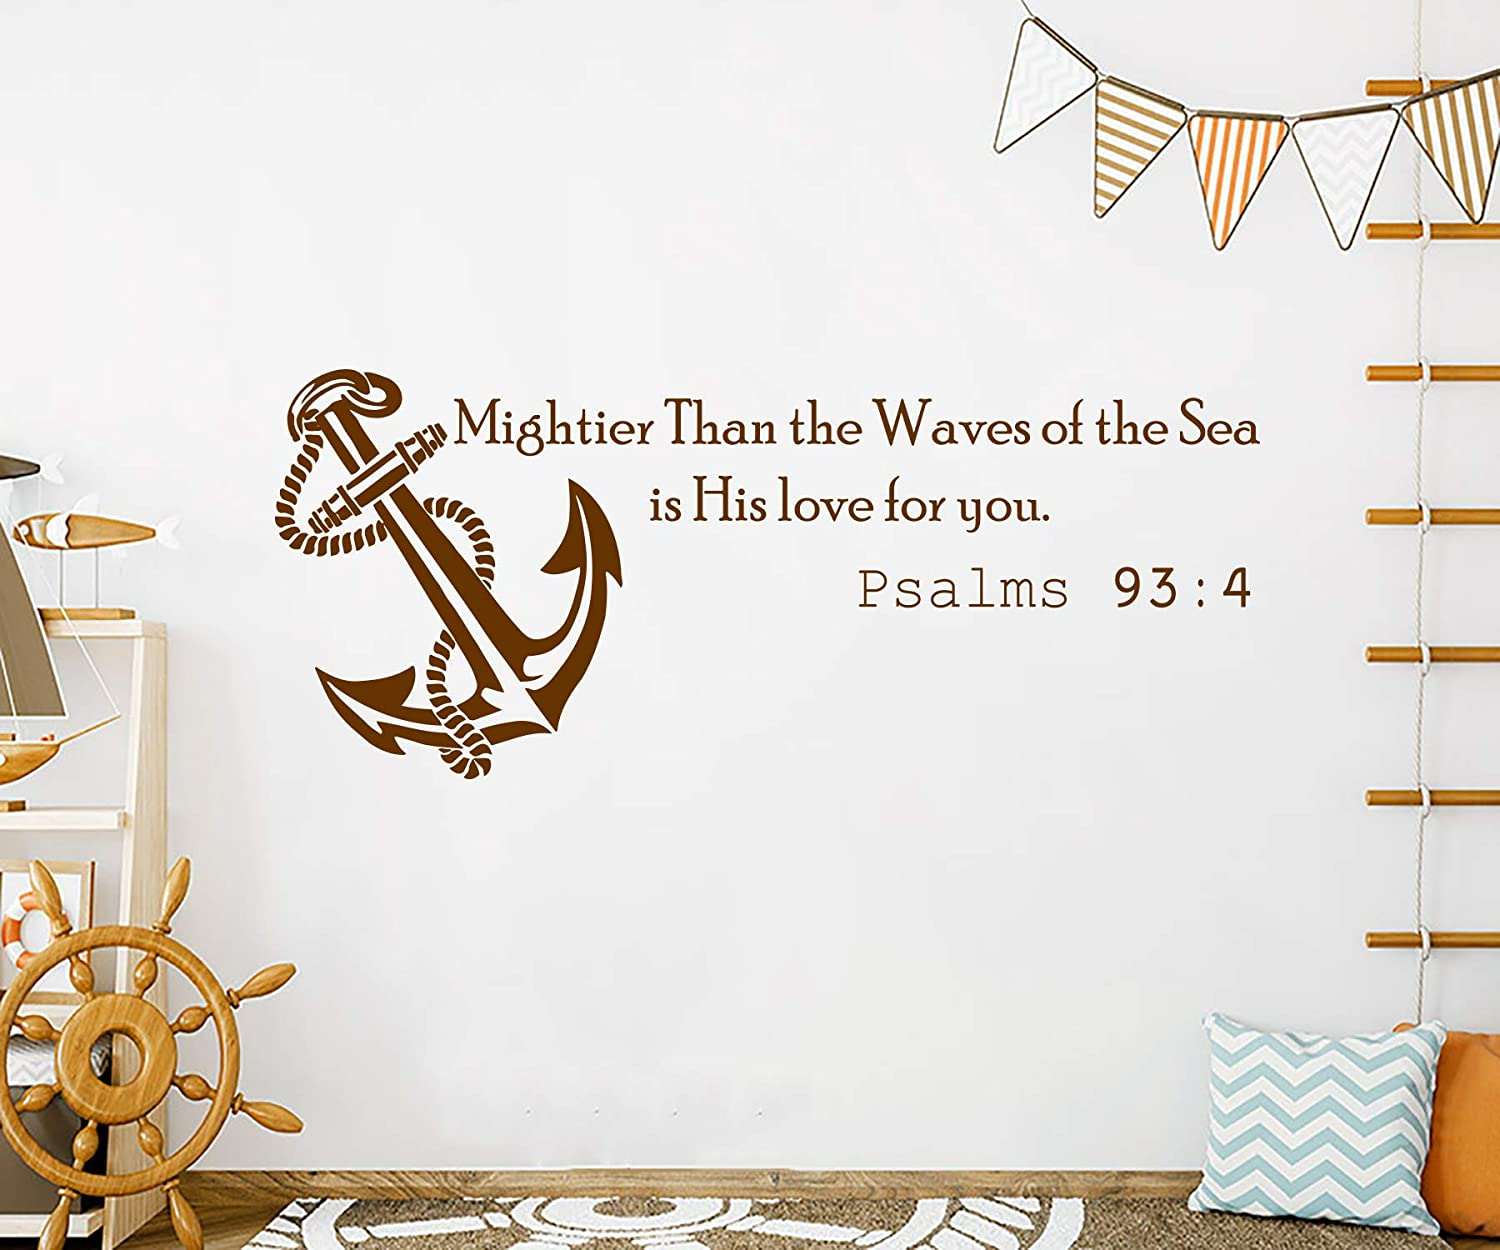 Wall Decals Quotes Vinyl Sticker Decal Quote Psalms 93:4 Mightier Than the  Waves of the Sea is His love for you Anchor Home Decor Nautical Bedroom Art  ...